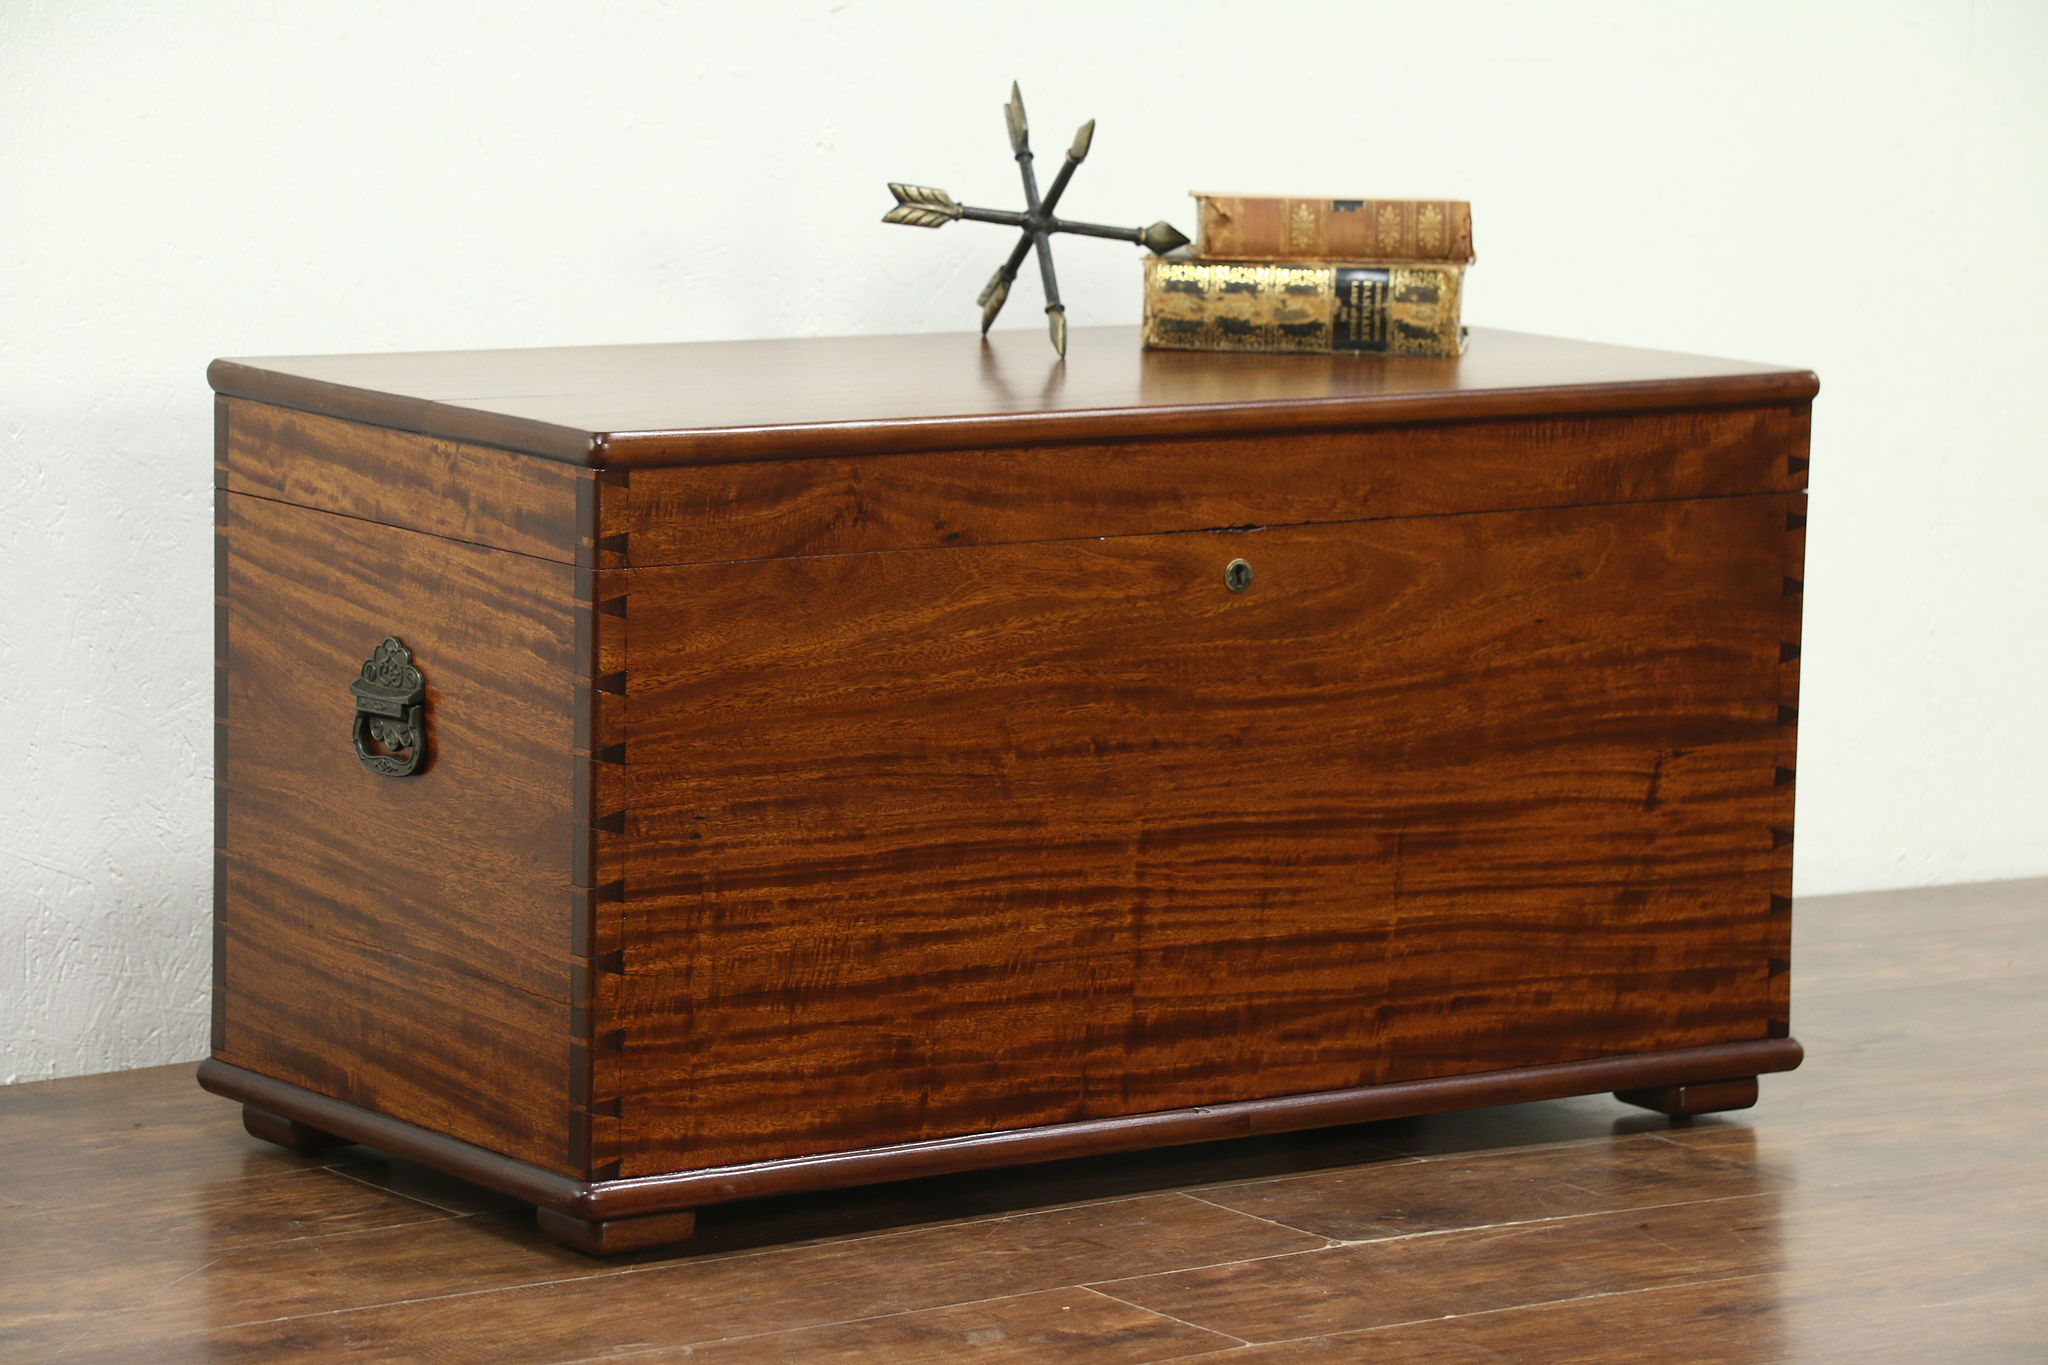 Sold Mahogany Antique Cedar Lined Blanket Chest Trunk